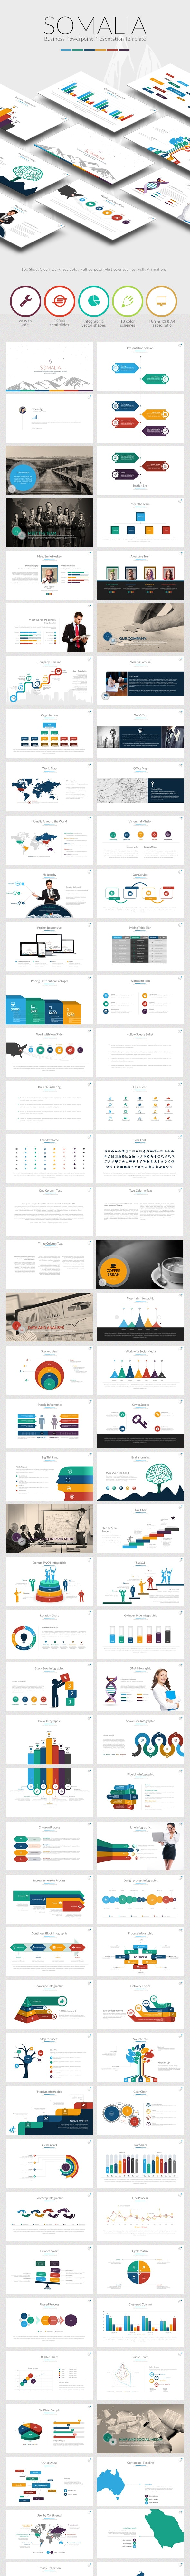 Somalia PowerpointTemplate - Business PowerPoint Templates